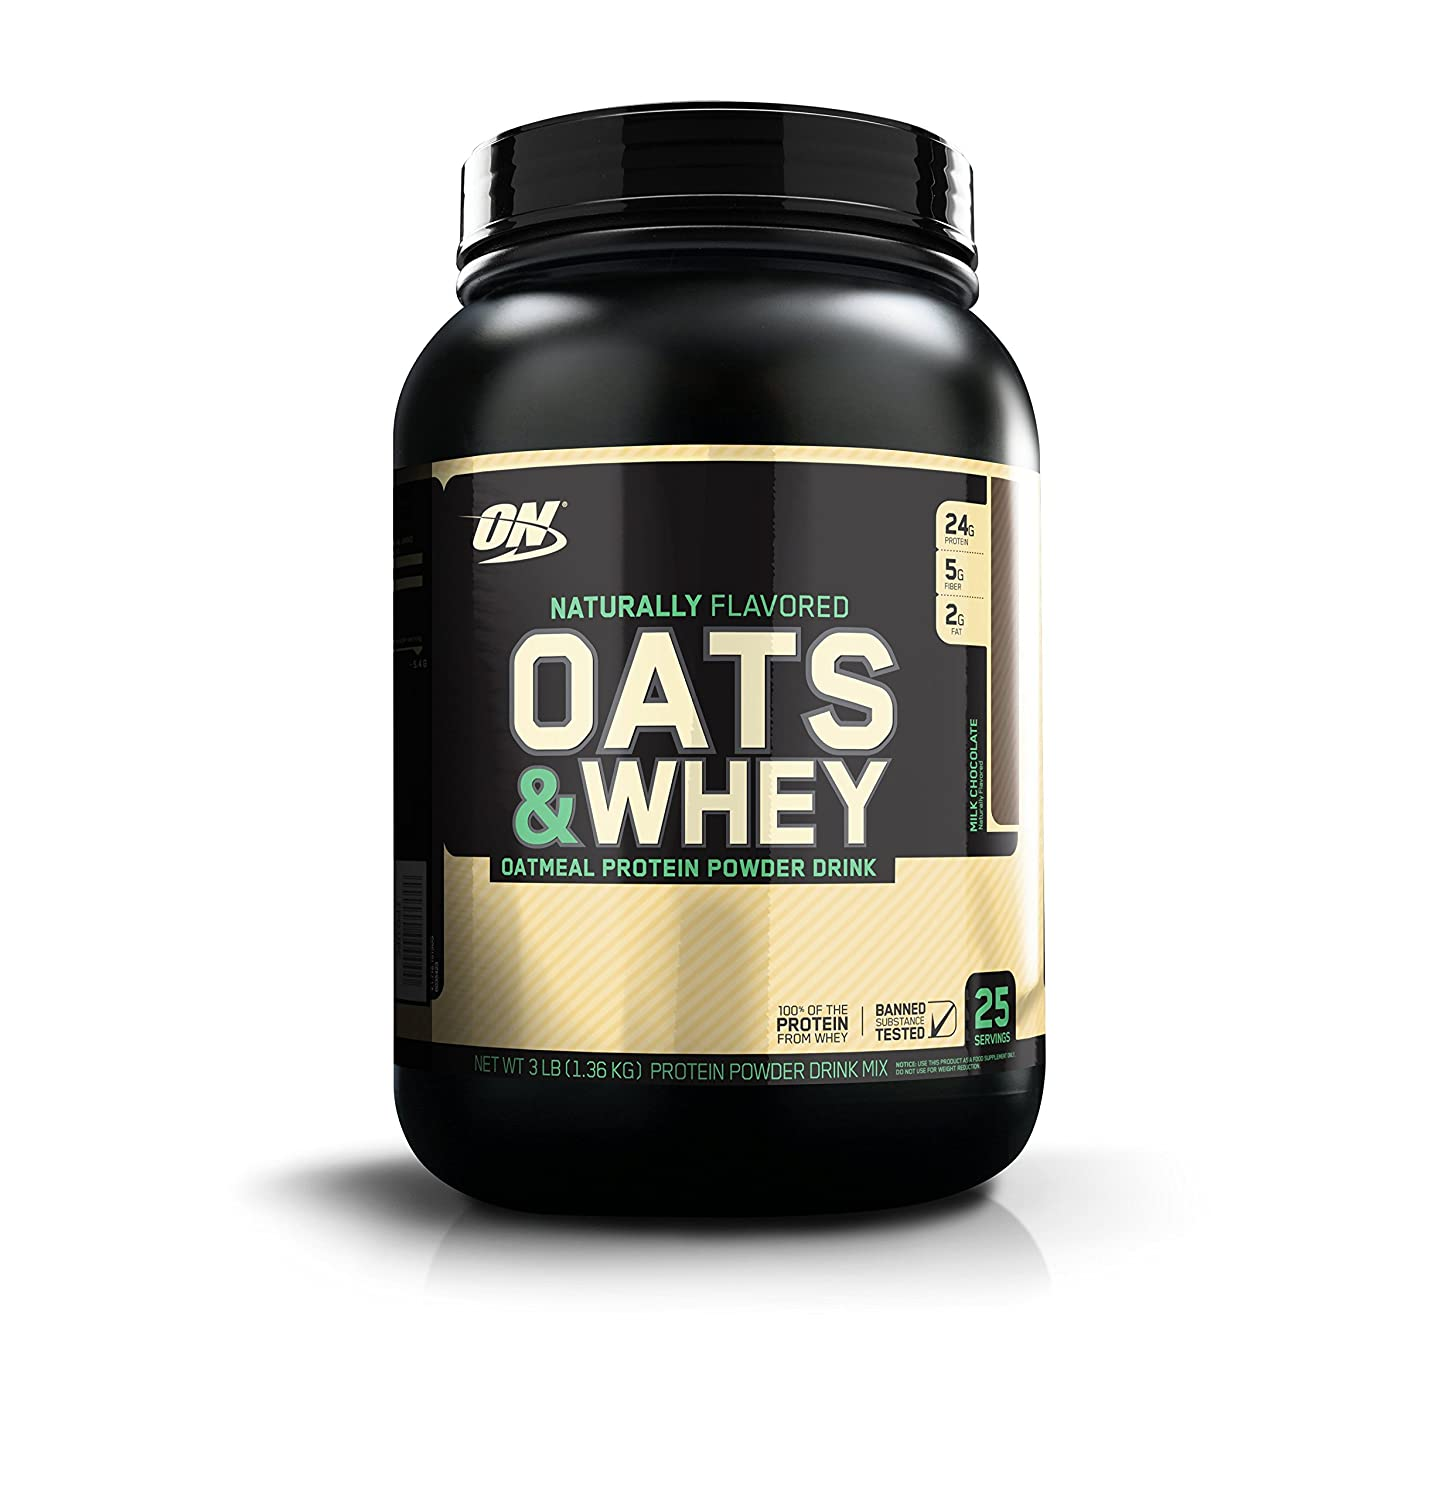 Protein Shaker Optimum Nutrition: Optimum Nutrition Natural Oats & Whey 1.36Kg Protein